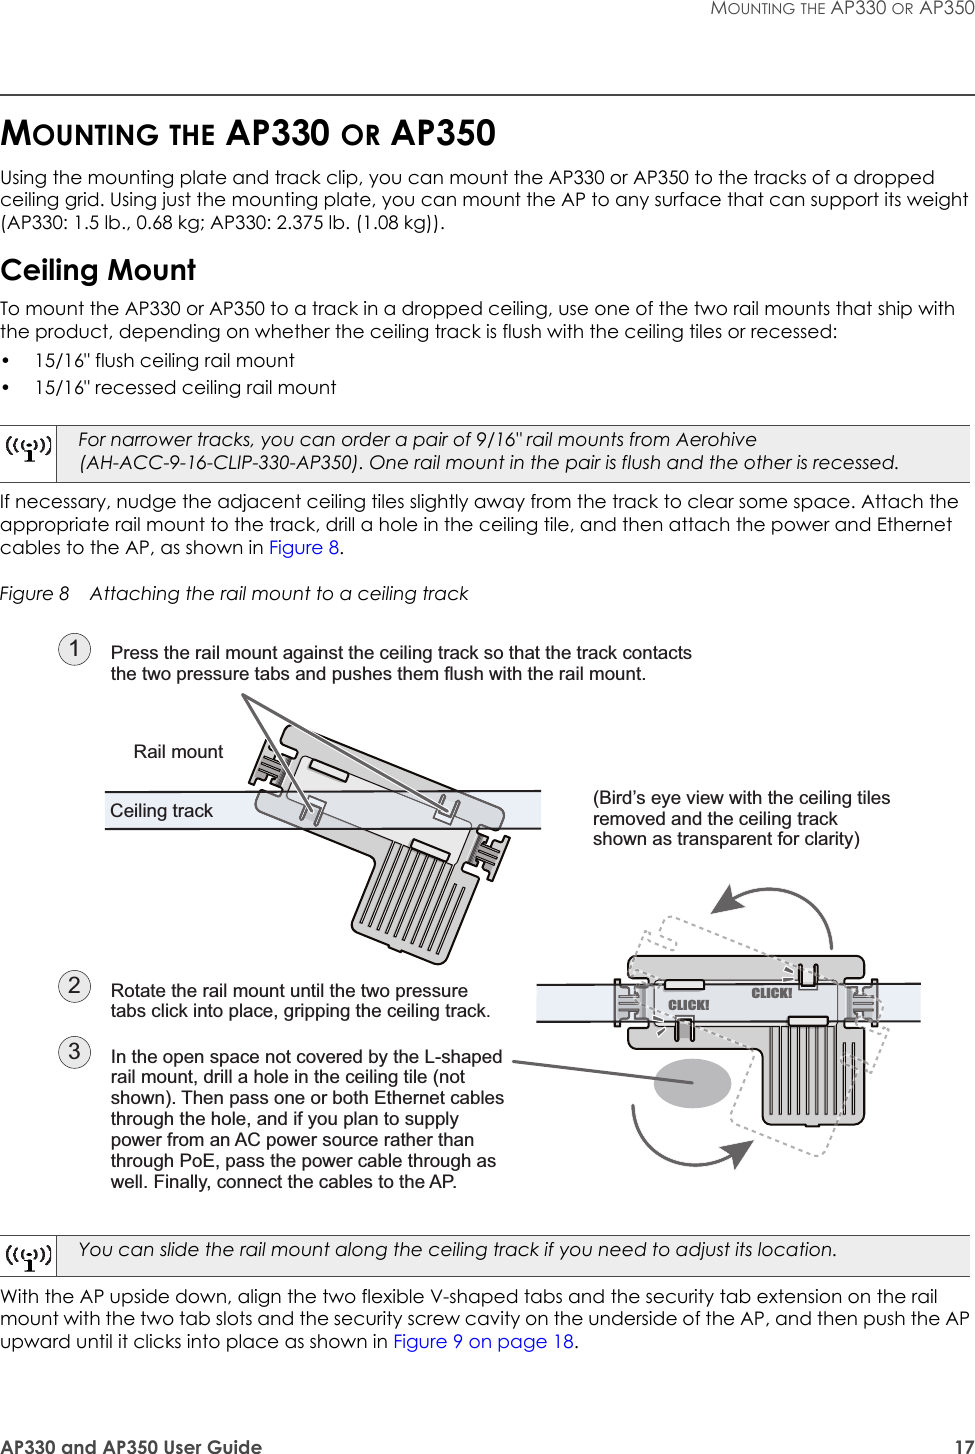 "AP330 and AP350 User Guide 17MOUNTING THE AP330 OR AP350MOUNTING THE AP330 OR AP350Using the mounting plate and track clip, you can mount the AP330 or AP350 to the tracks of a dropped ceiling grid. Using just the mounting plate, you can mount the AP to any surface that can support its weight (AP330: 1.5 lb., 0.68 kg; AP330: 2.375 lb. (1.08 kg)).Ceiling MountTo mount the AP330 or AP350 to a track in a dropped ceiling, use one of the two rail mounts that ship with the product, depending on whether the ceiling track is flush with the ceiling tiles or recessed:• 15/16"" flush ceiling rail mount• 15/16"" recessed ceiling rail mountIf necessary, nudge the adjacent ceiling tiles slightly away from the track to clear some space. Attach the appropriate rail mount to the track, drill a hole in the ceiling tile, and then attach the power and Ethernet cables to the AP, as shown in Figure 8.Figure 8  Attaching the rail mount to a ceiling trackWith the AP upside down, align the two flexible V-shaped tabs and the security tab extension on the rail mount with the two tab slots and the security screw cavity on the underside of the AP, and then push the AP upward until it clicks into place as shown in Figure 9 on page 18.For narrower tracks, you can order a pair of 9/16"" rail mounts from Aerohive (AH-ACC-9-16-CLIP-330-AP350). One rail mount in the pair is flush and the other is recessed.You can slide the rail mount along the ceiling track if you need to adjust its location.Press the rail mount against the ceiling track so that the track contacts the two pressure tabs and pushes them flush with the rail mount.(Bird's eye view with the ceiling tiles removed and the ceiling track shown as transparent for clarity)Rotate the rail mount until the two pressure tabs click into place, gripping the ceiling track.2In the open space not covered by the L-shaped rail mount, drill a hole in the ceiling tile (not shown). Then pass one or both Ethernet cables through the hole, and if you plan to supply power from an AC power source rather than through PoE, pass the power cable through as well. Finally, connect the cables to the AP.31Rail mountCeiling trackCLICK!CLICK!"